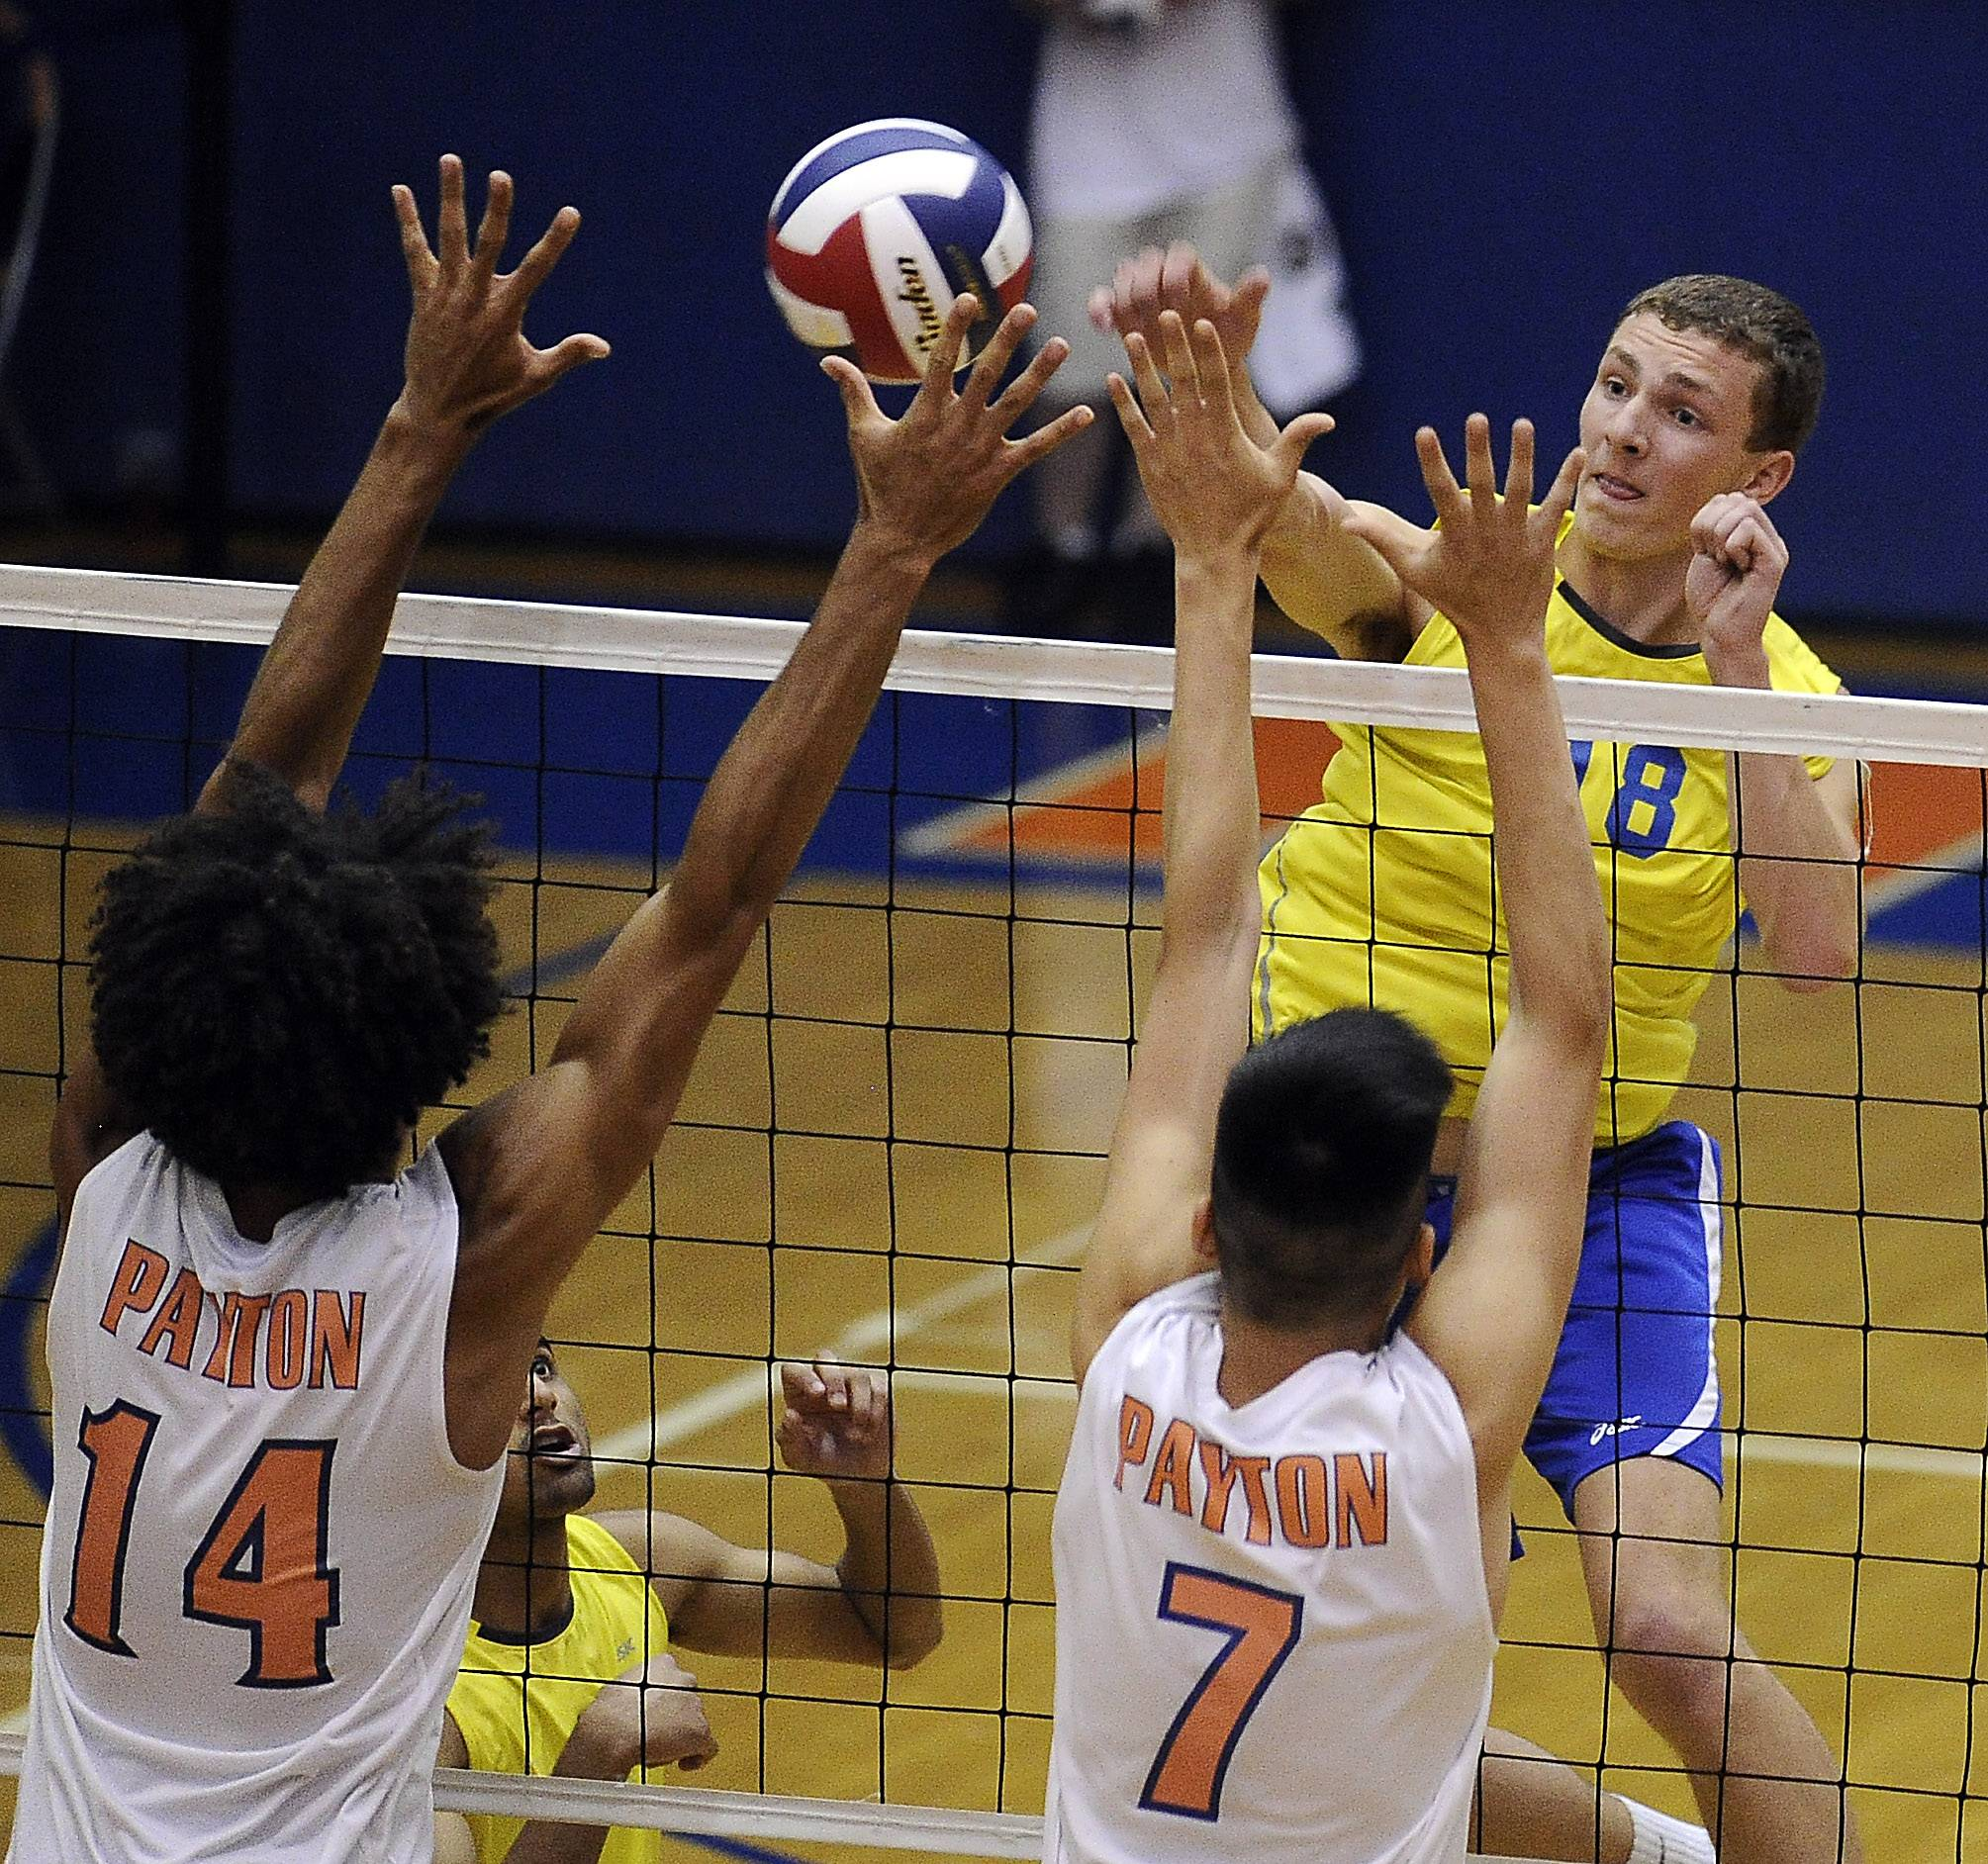 Warren's Jeremy White slams one back to Payton's Earl Schultz and Ryan Krull in set one of the boys volleyball state quarterfinals at Hoffman Estates High School on Friday.